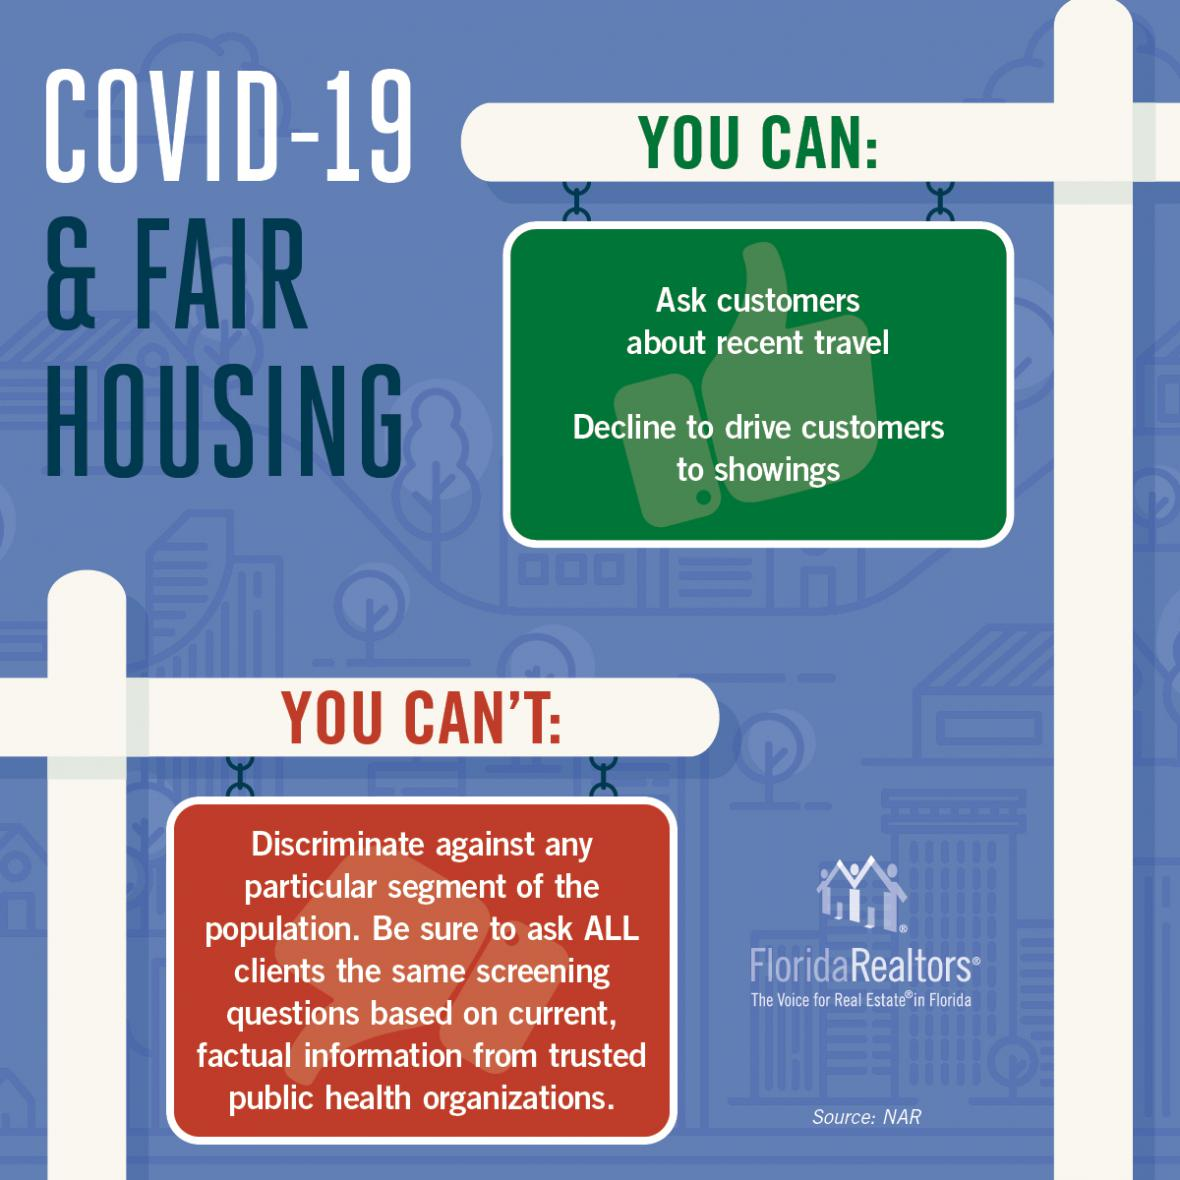 covid-19 and fair housing infographic